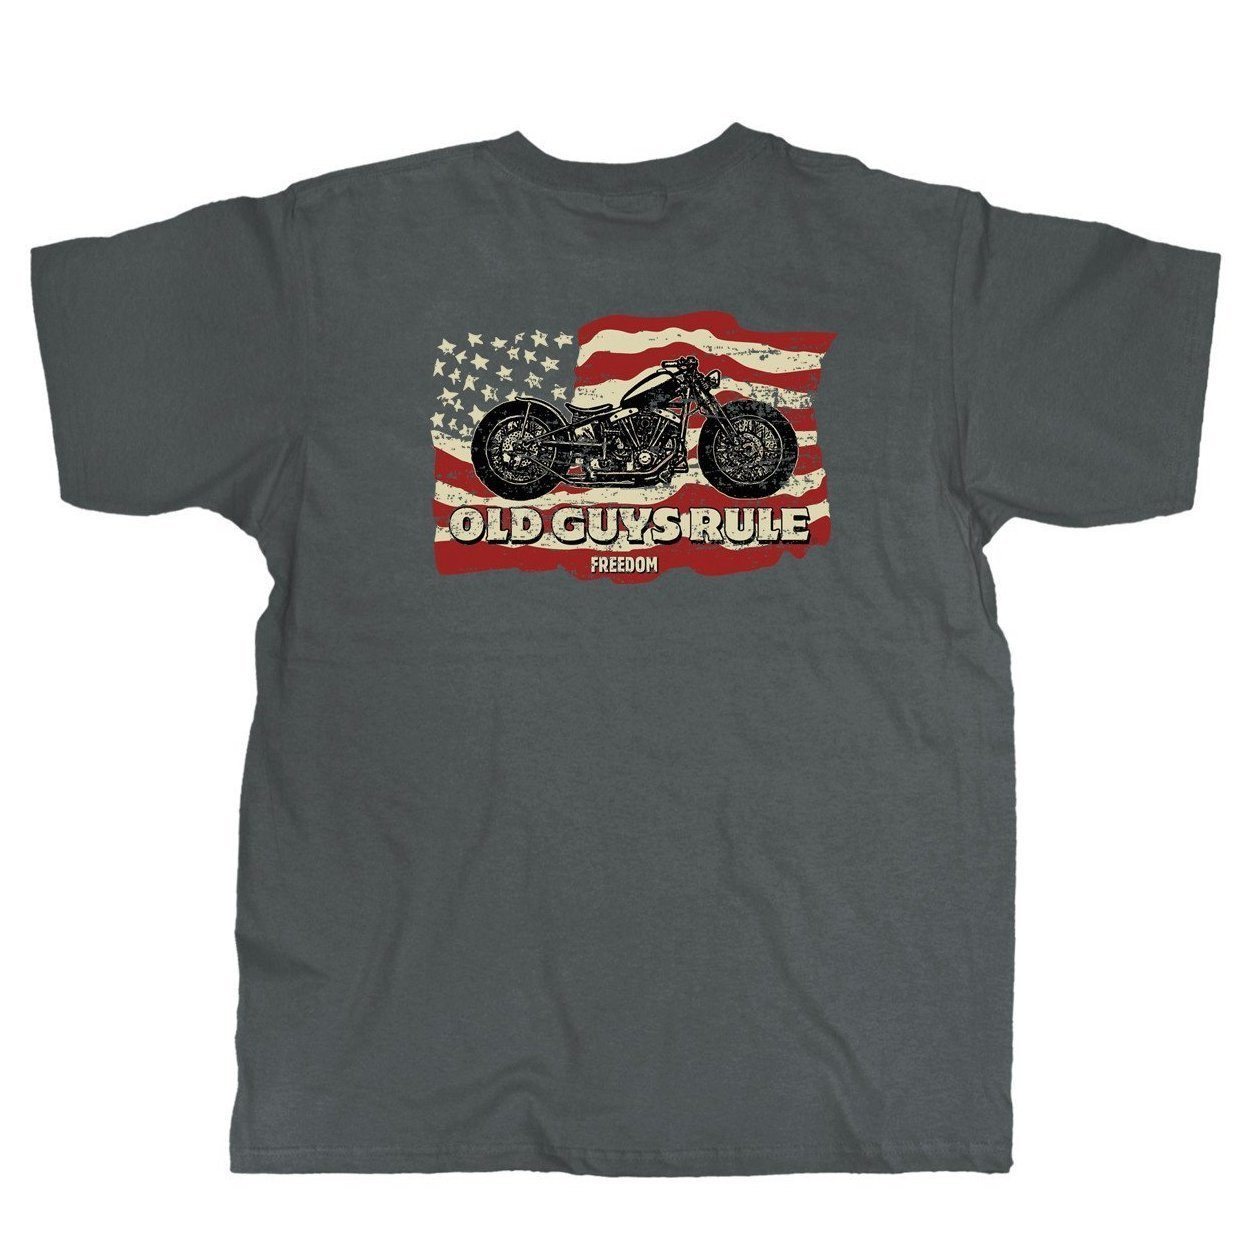 Old Guys Rule - Freedom Ride - Charcoal T-Shirt - Main View